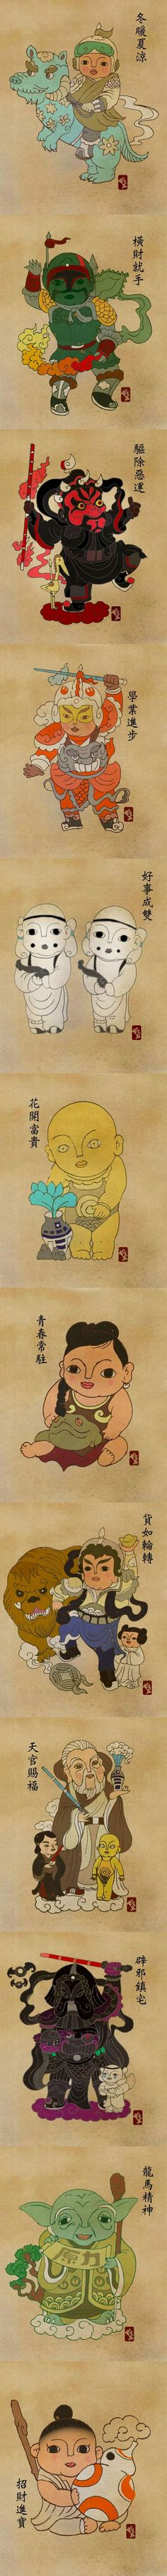 Traditional Chinese art mixes with Star Wars characters Search for Fun - Funny Clone Meme 2018 Traditional Chinese art mixes with Star Wars Chinese Characters, Star Wars Characters, Rage Comics, Weird Art, Traditional Chinese, Chinese Art, Best Funny Pictures, Nerd, Geek Stuff